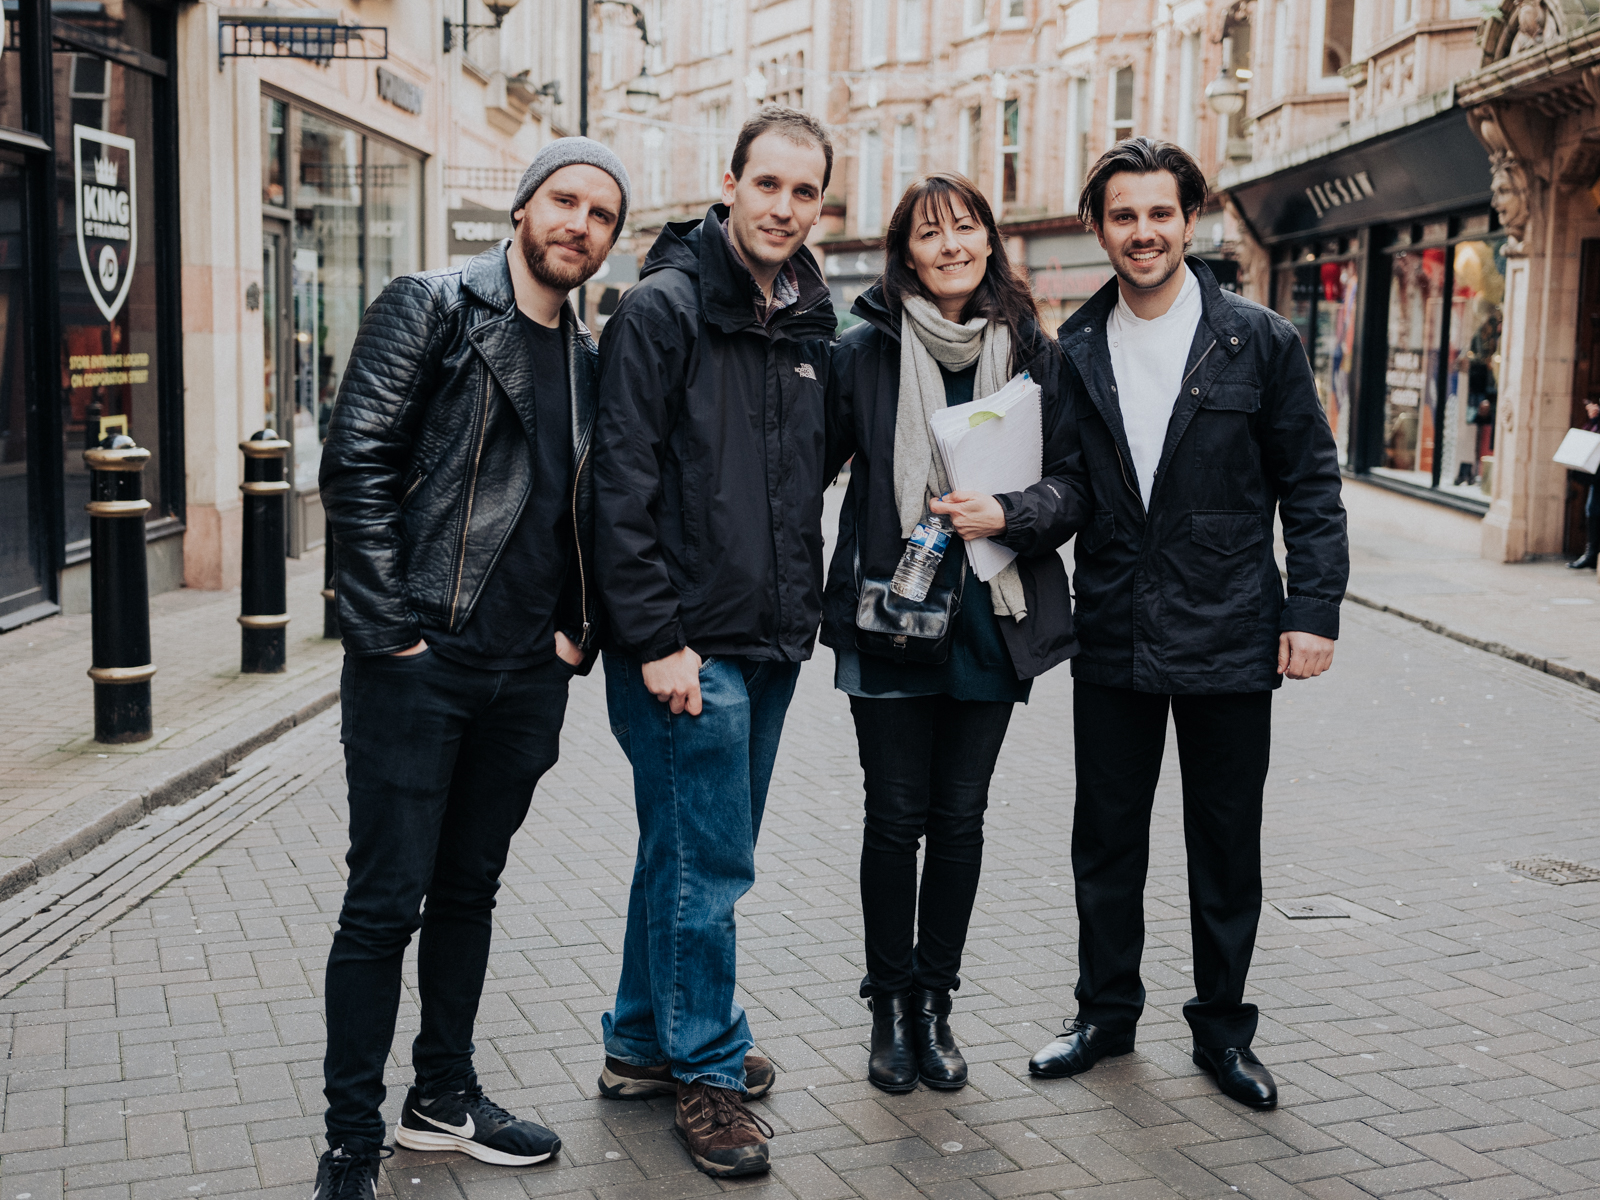 From L to R: Ben Errington (Writer), Christopher Bevan (Director), Belinda Basson (Producer) and Adam Horvath (Actor, Marcus)